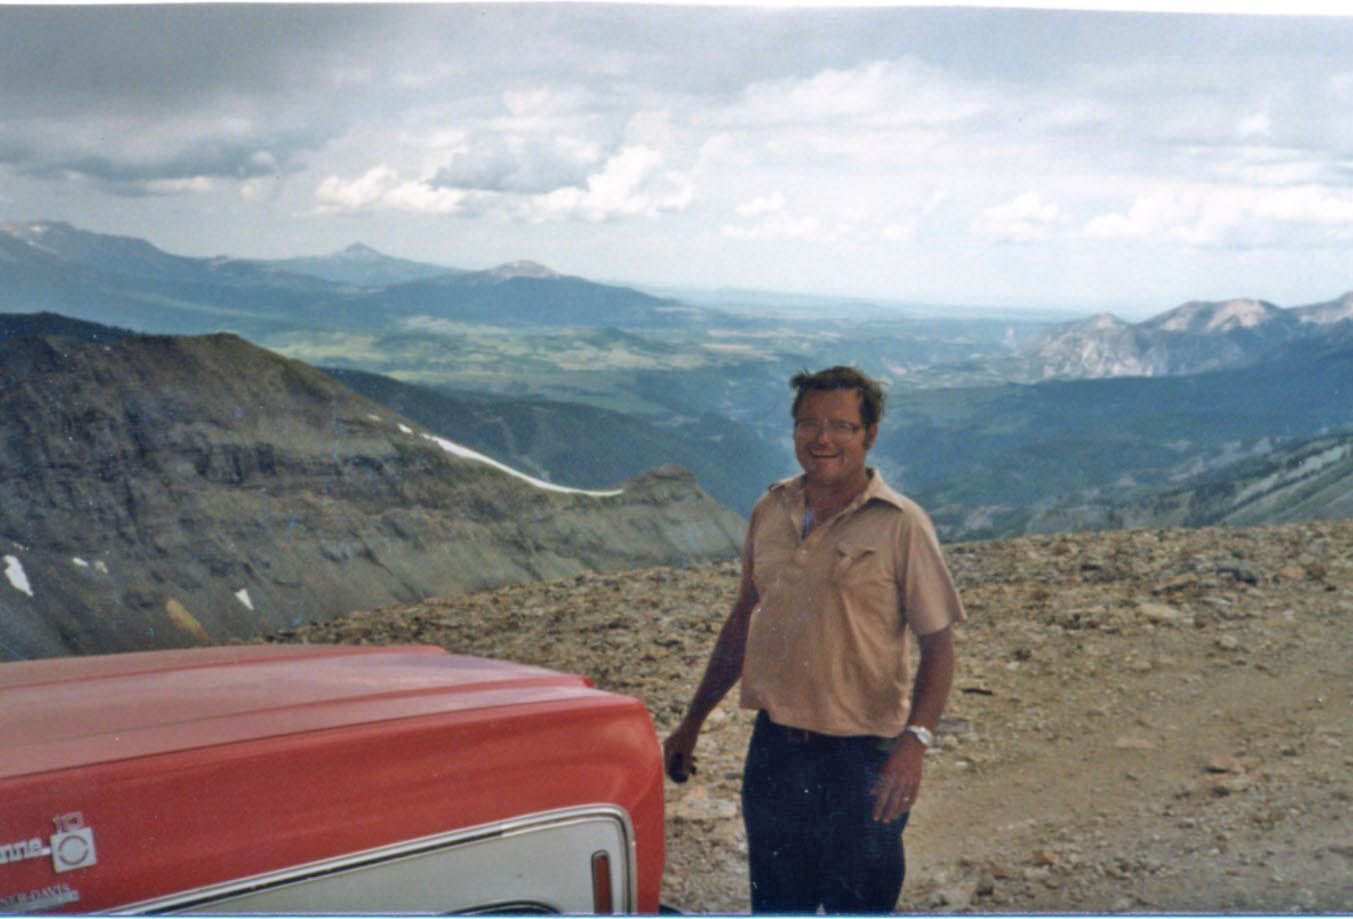 Dad next to Big Red on Imogene, sometime in the late 1970s.